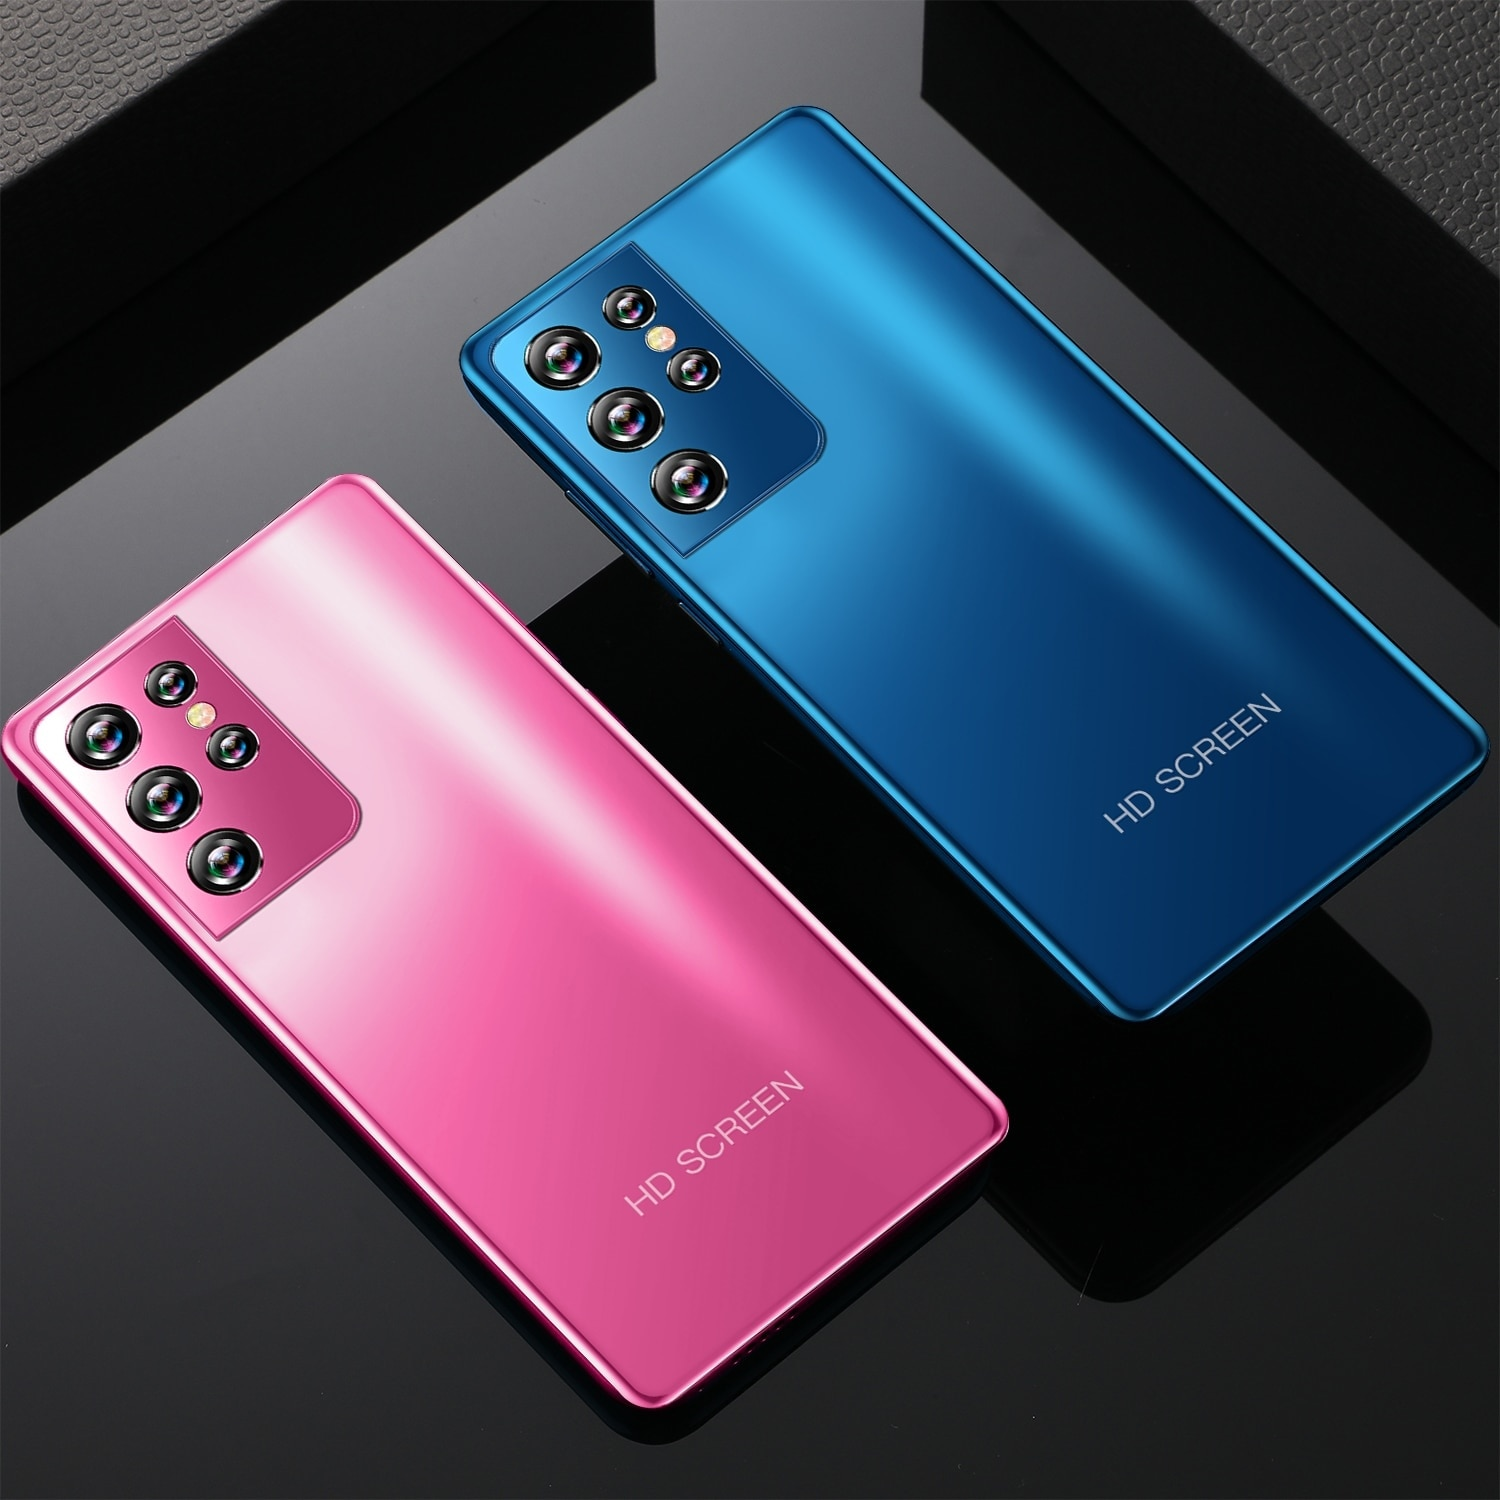 Cheap Phone S21 Ultra Drop Screen Smartphone 6+128G 5.0inch 10 Core MT6889 16MP+32MP Android 10 4G 5G Fingerprint Face ID enlarge